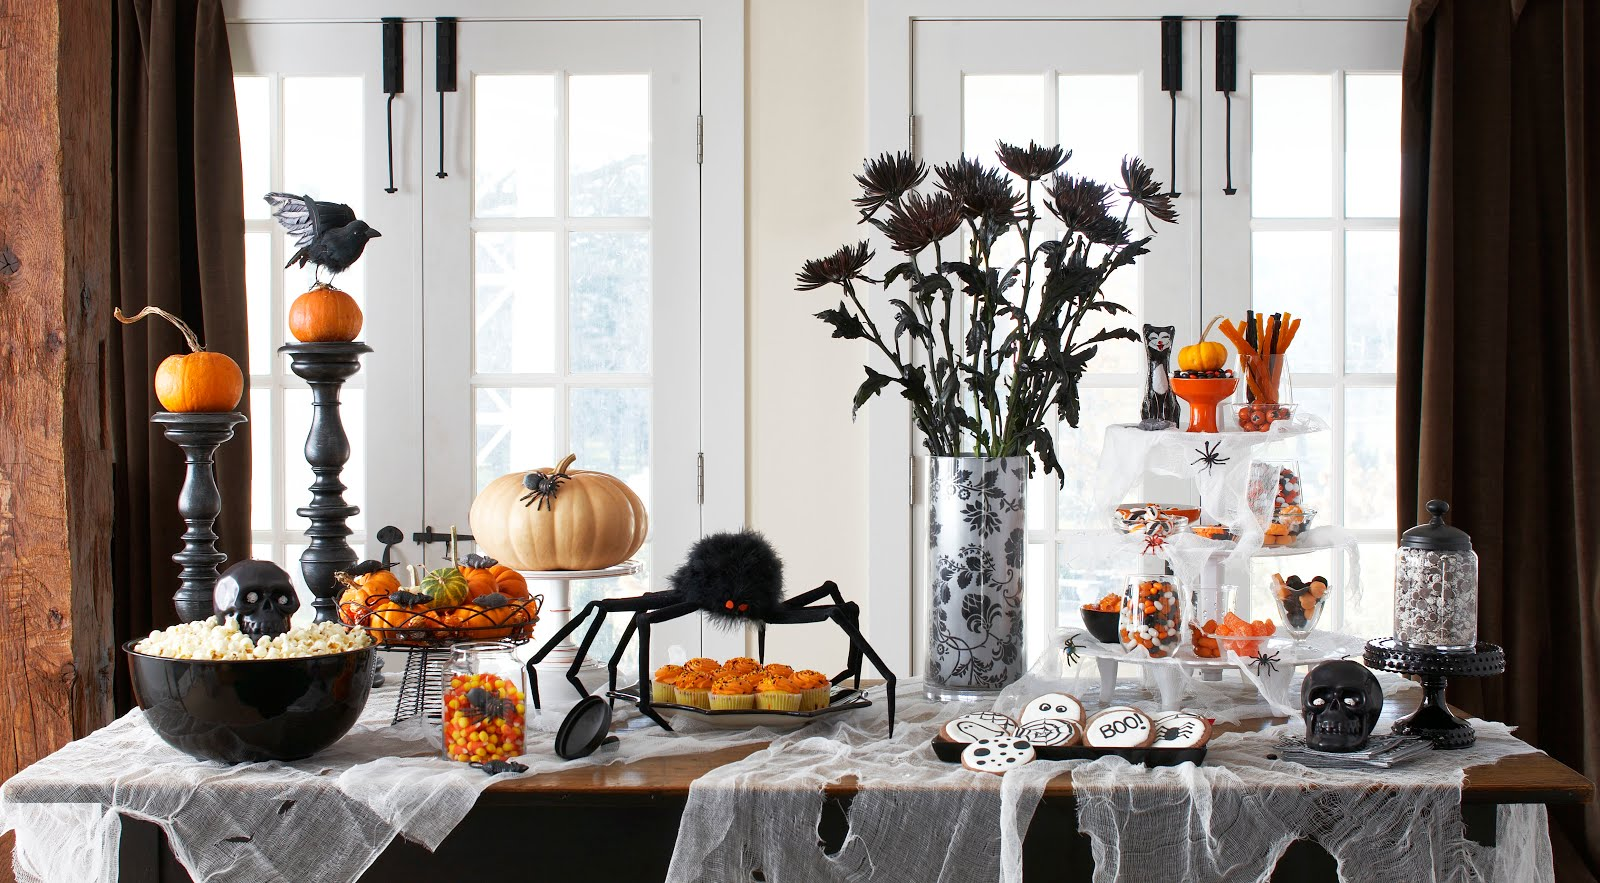 Dining Table with Halloween Themes